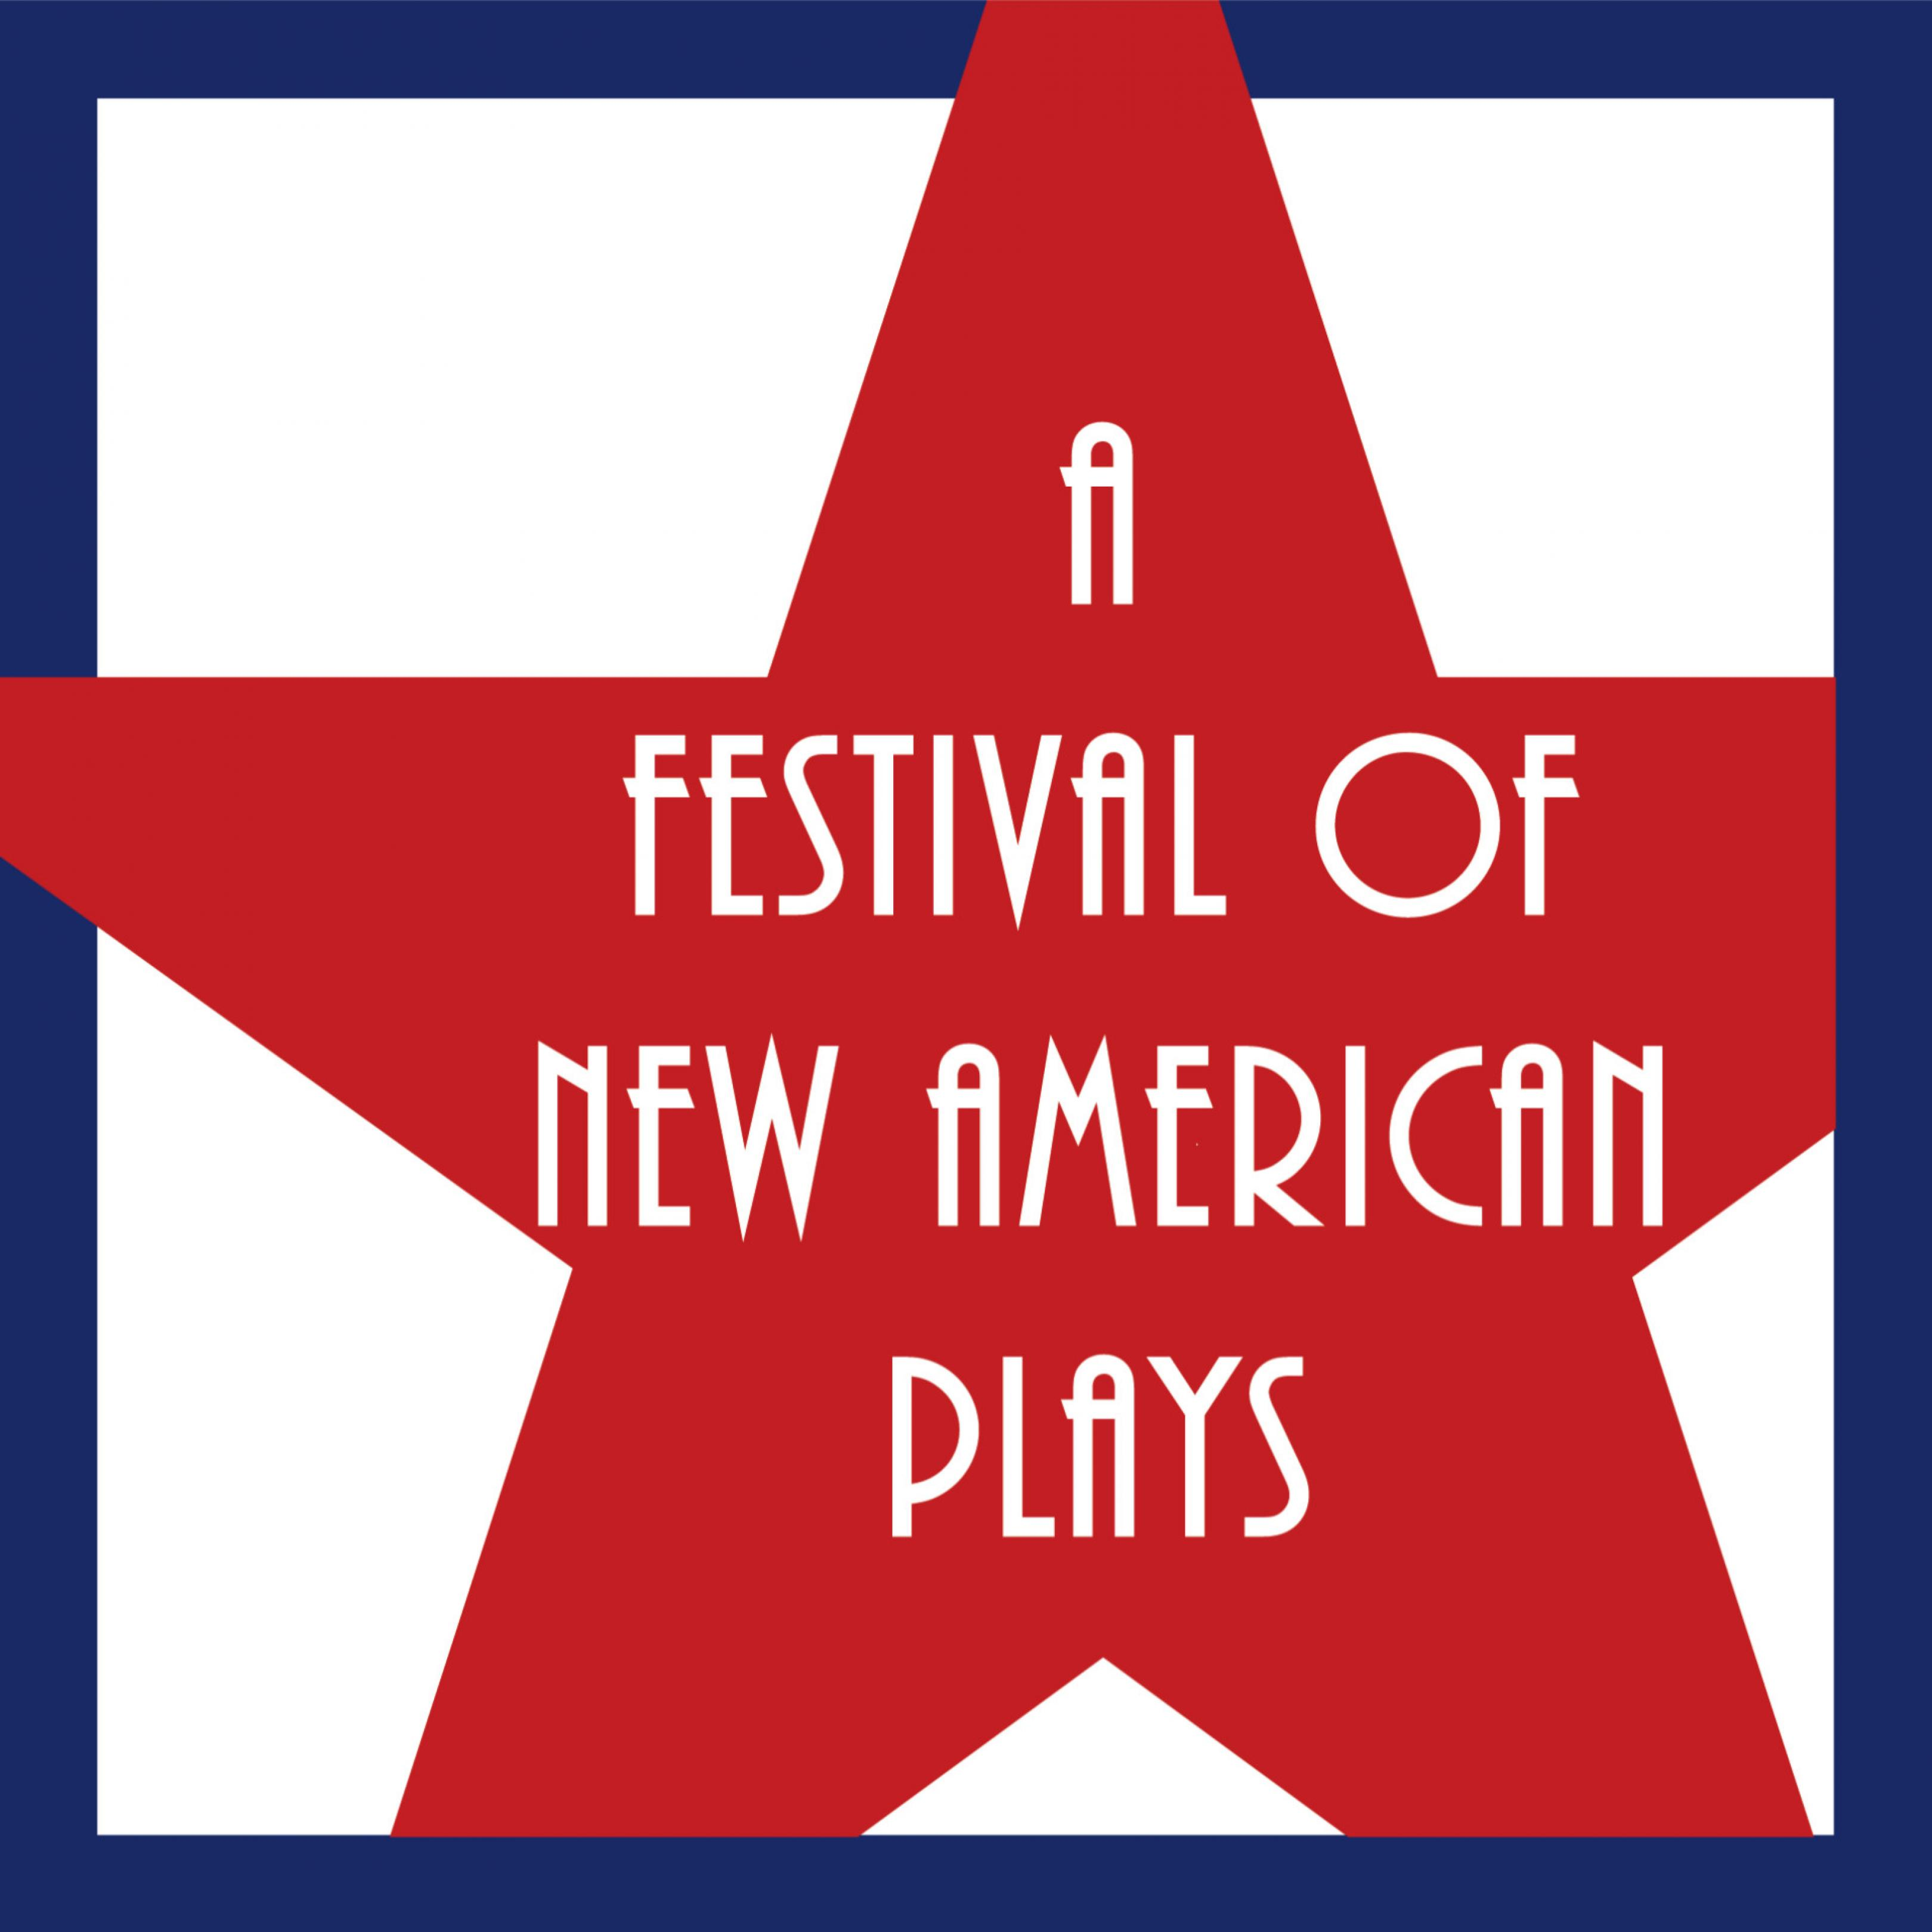 publicity image for The Festival of New American Plays